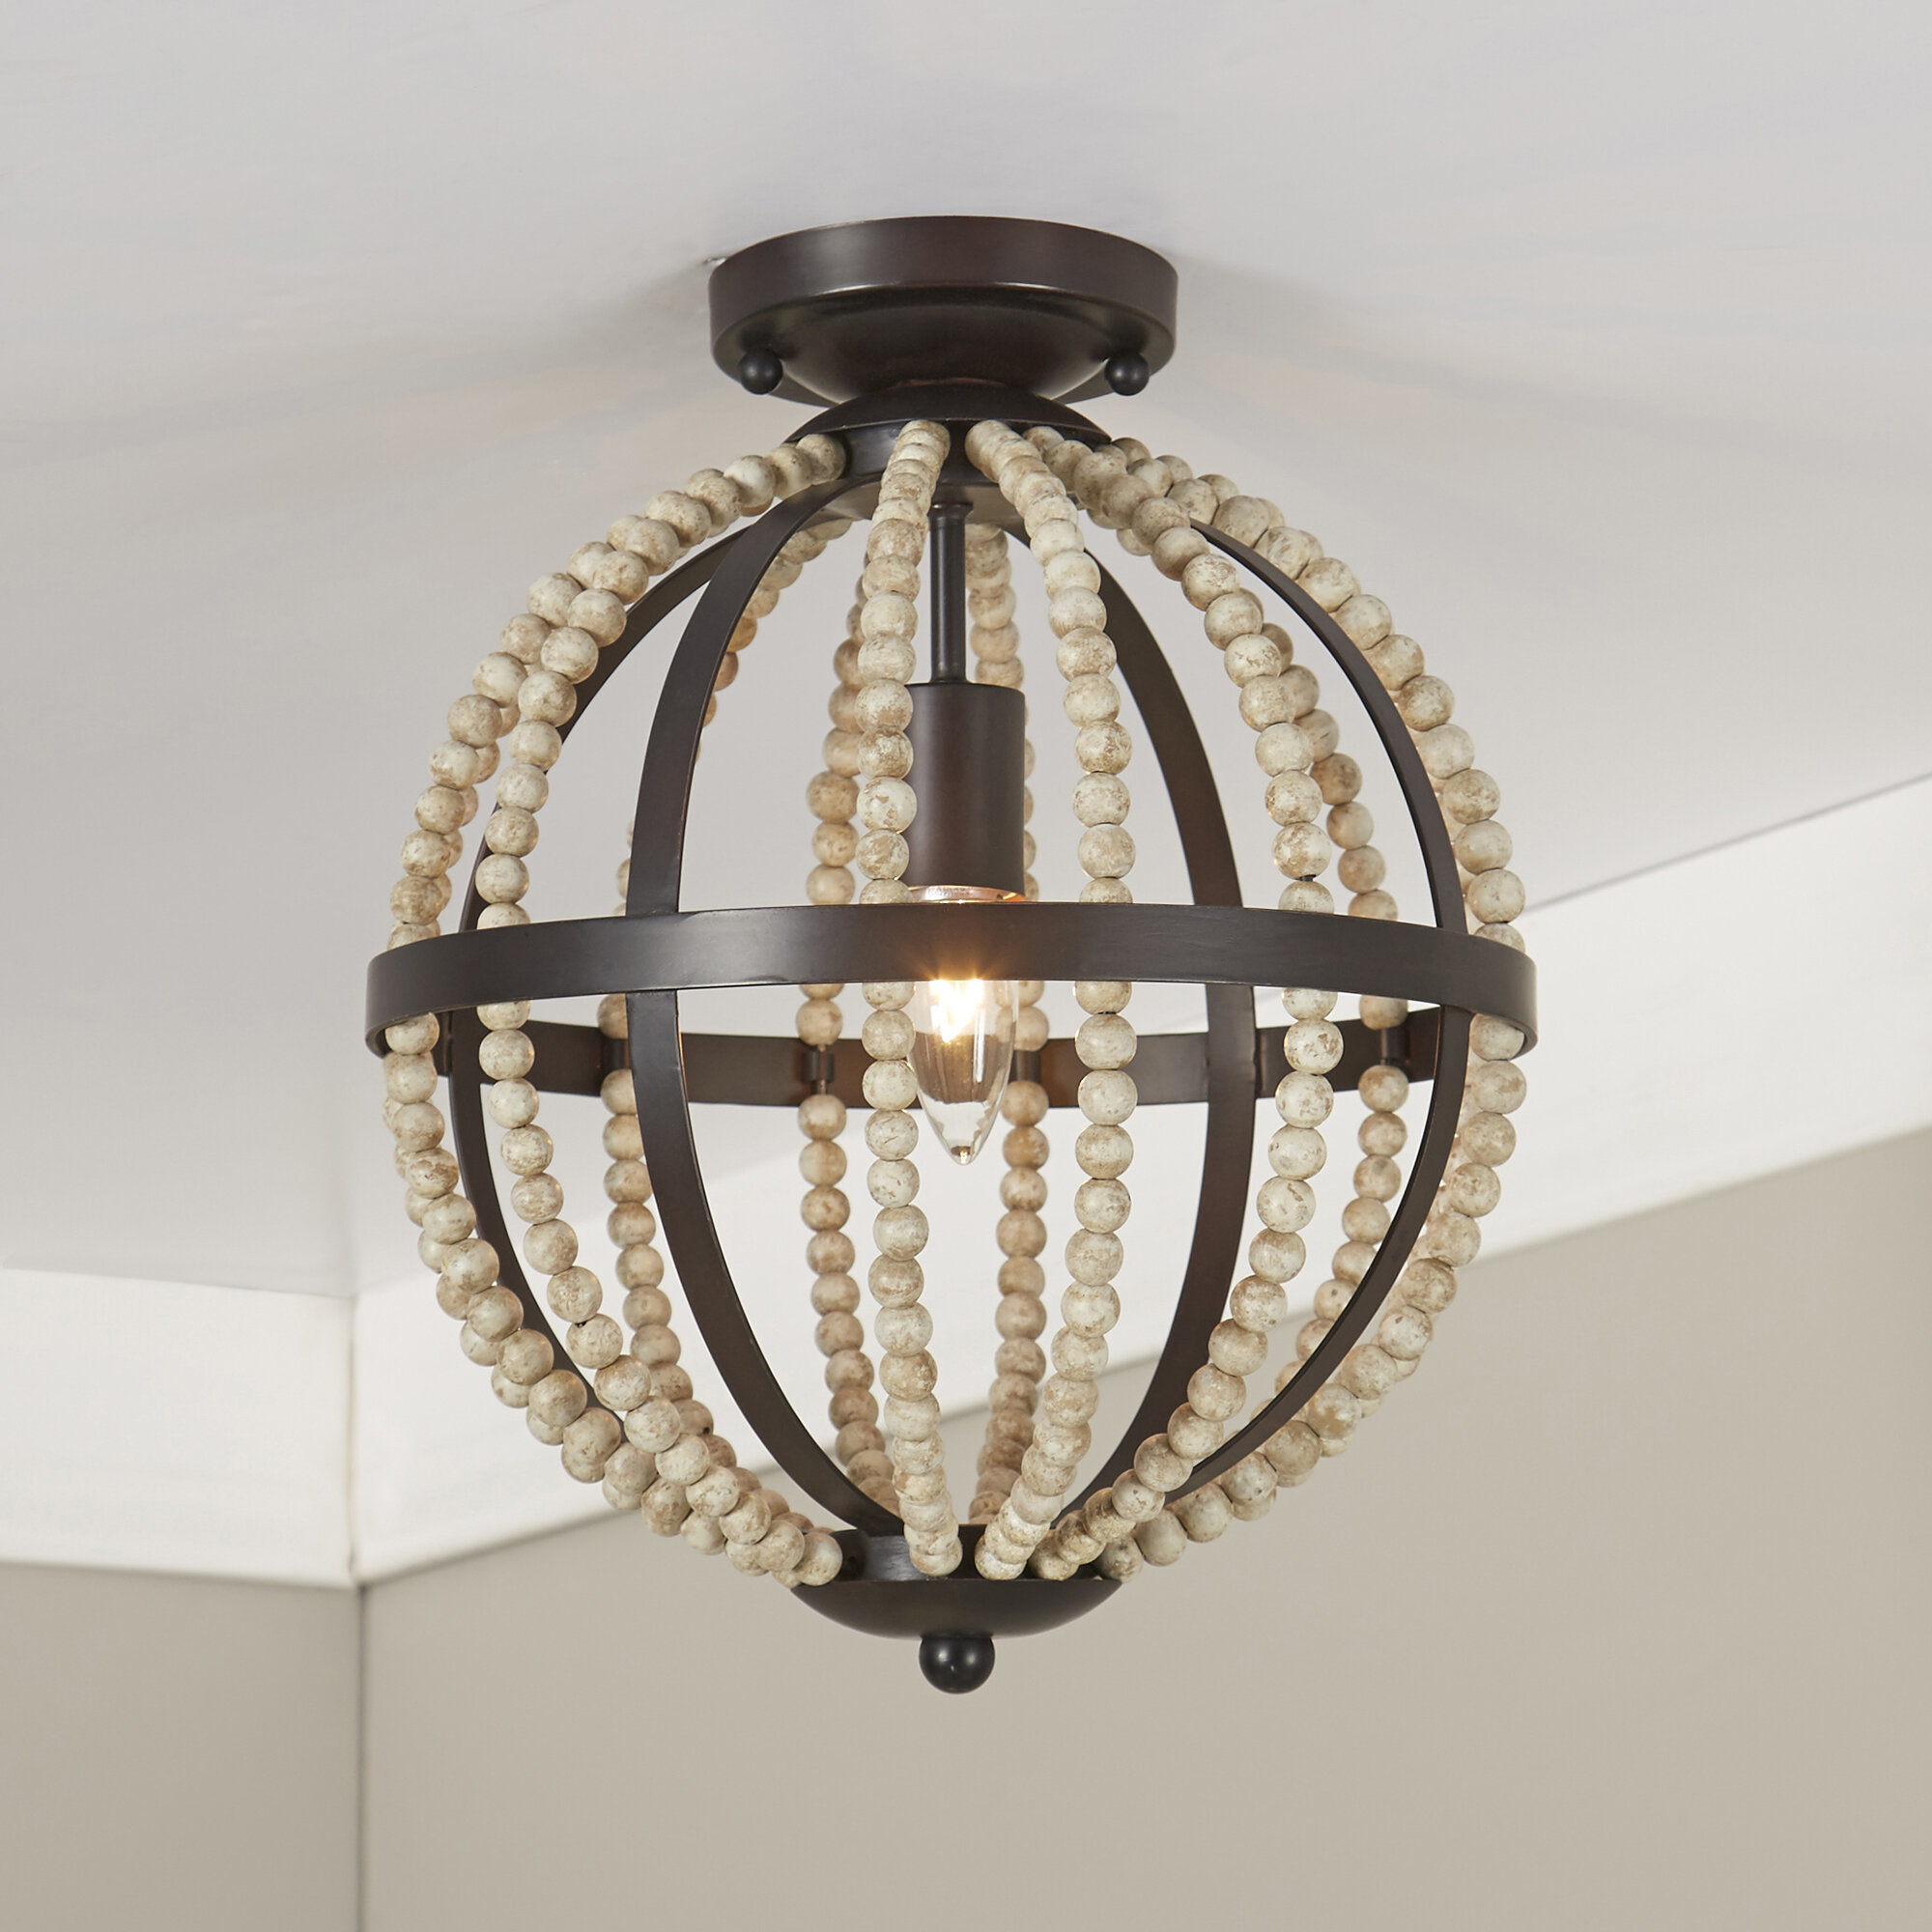 best fixtures mount light of flush ceiling led lights mounted kitchen picture ceilings